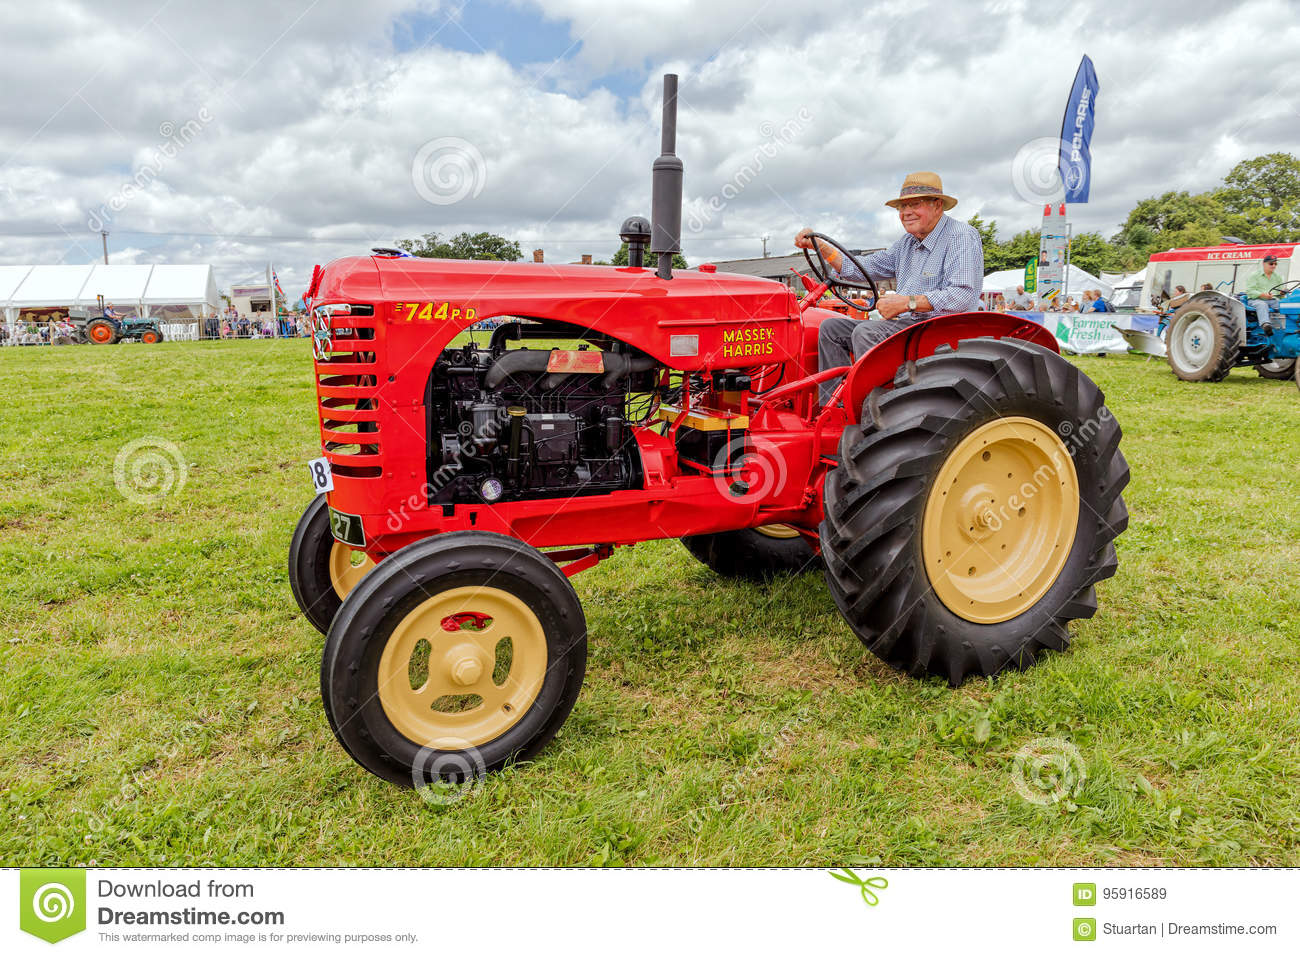 Massey Harris 744 PD Tractor